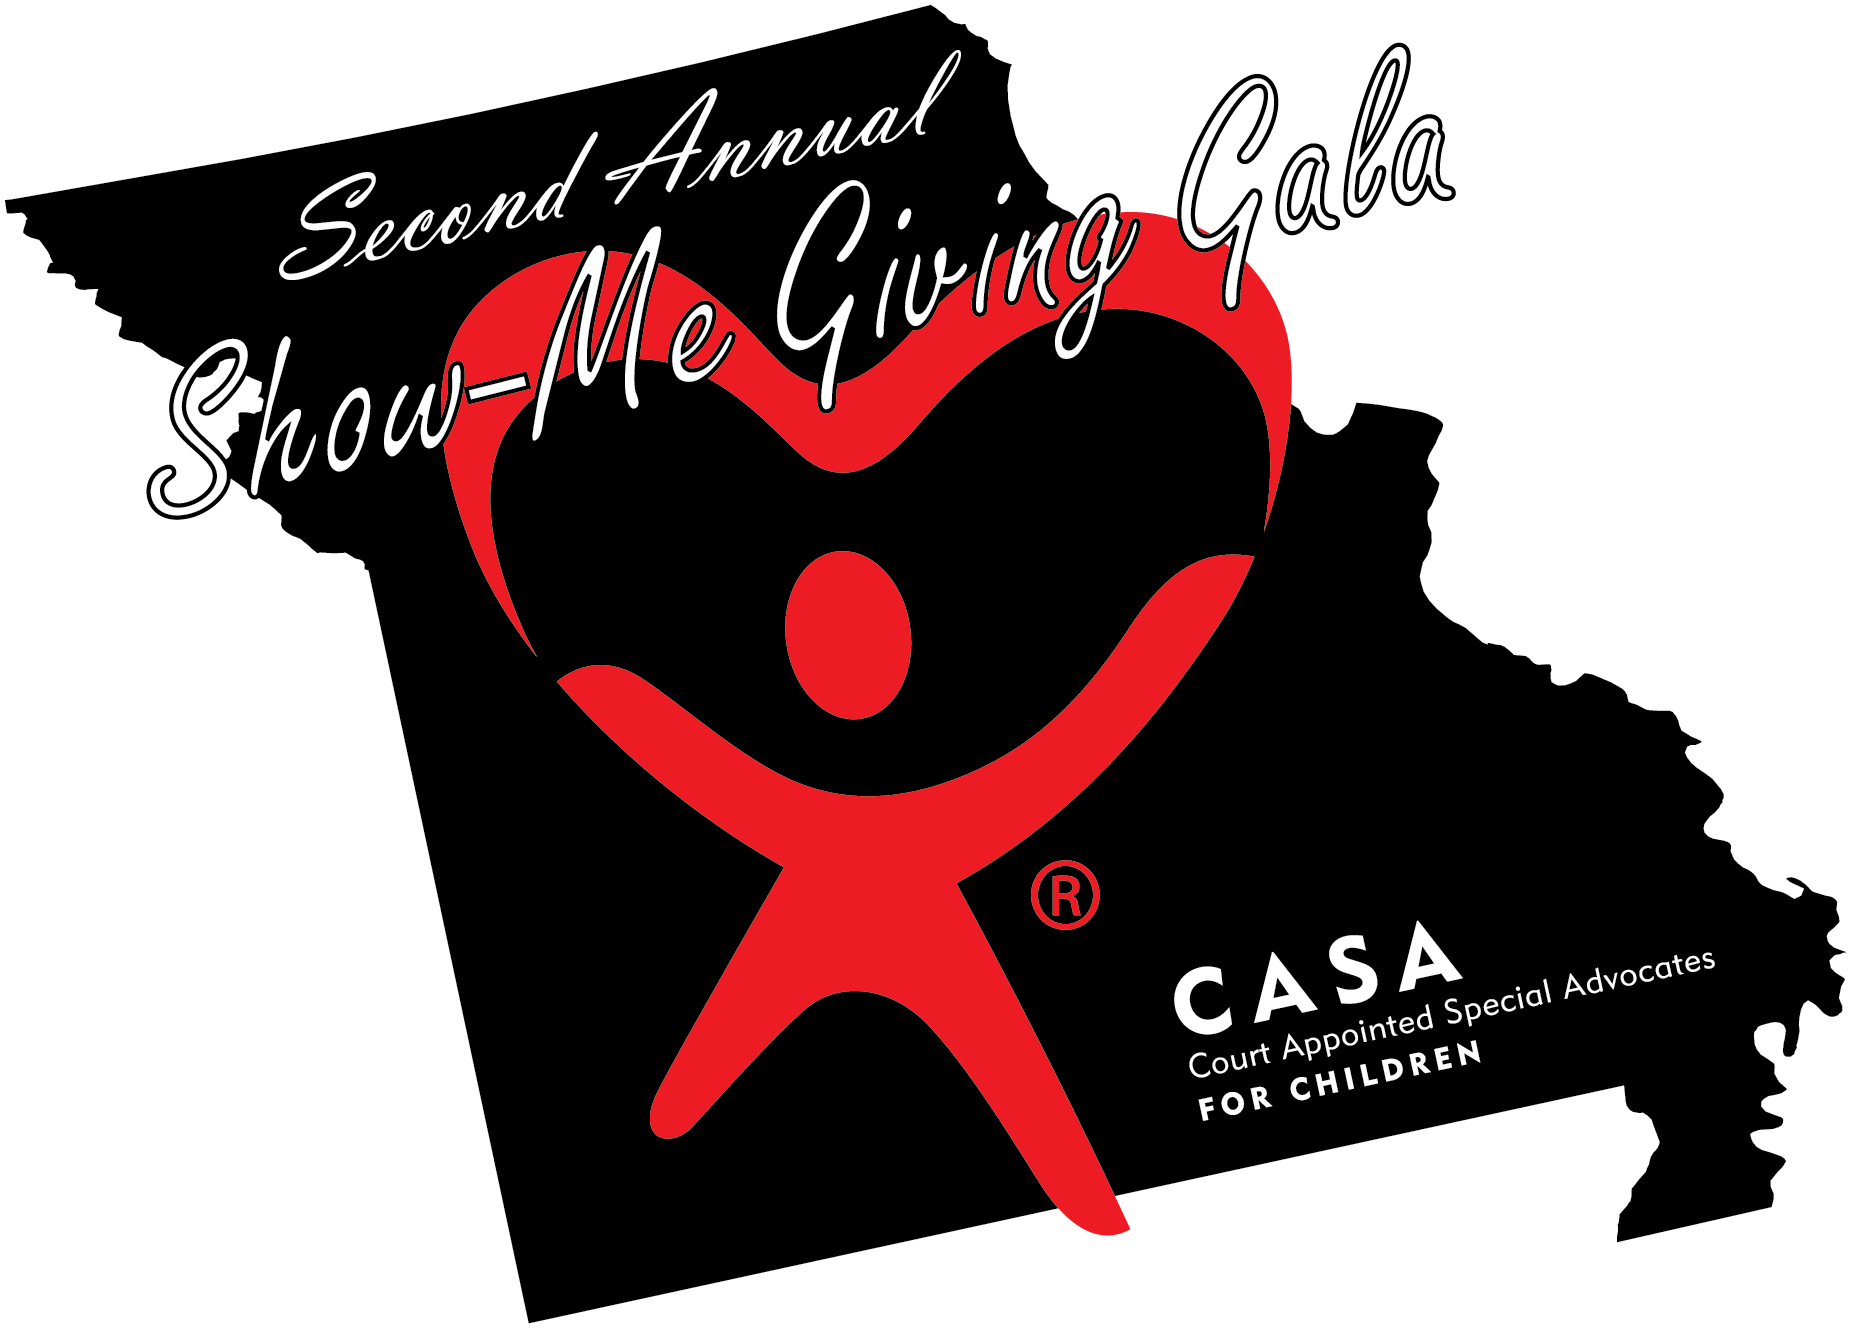 Show me giving gala. Court clipart advocates